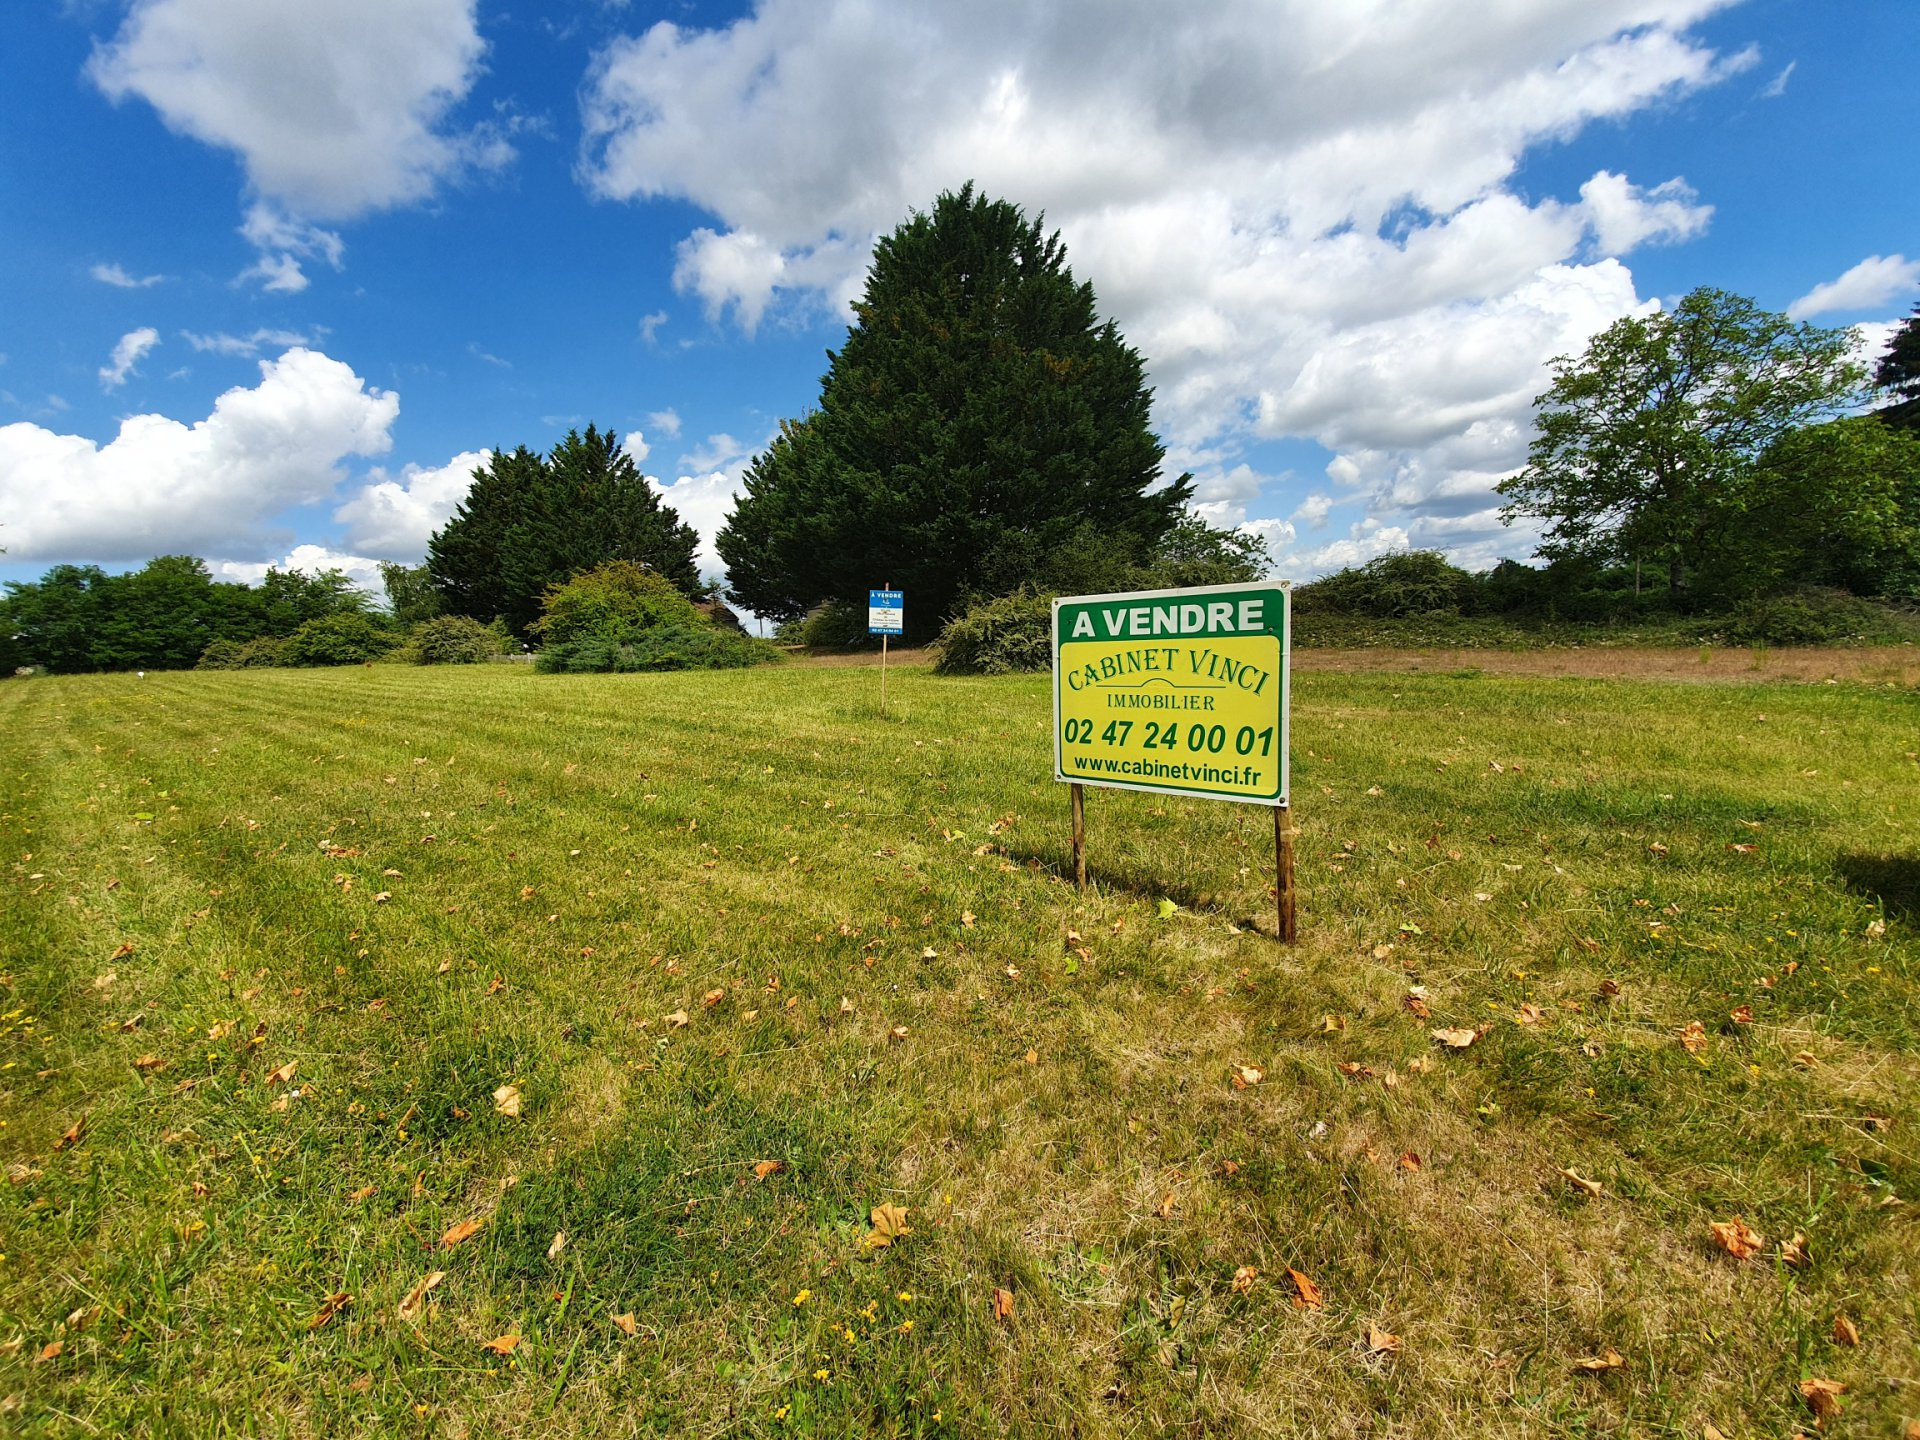 Sale Building land - Chateau La Valliere